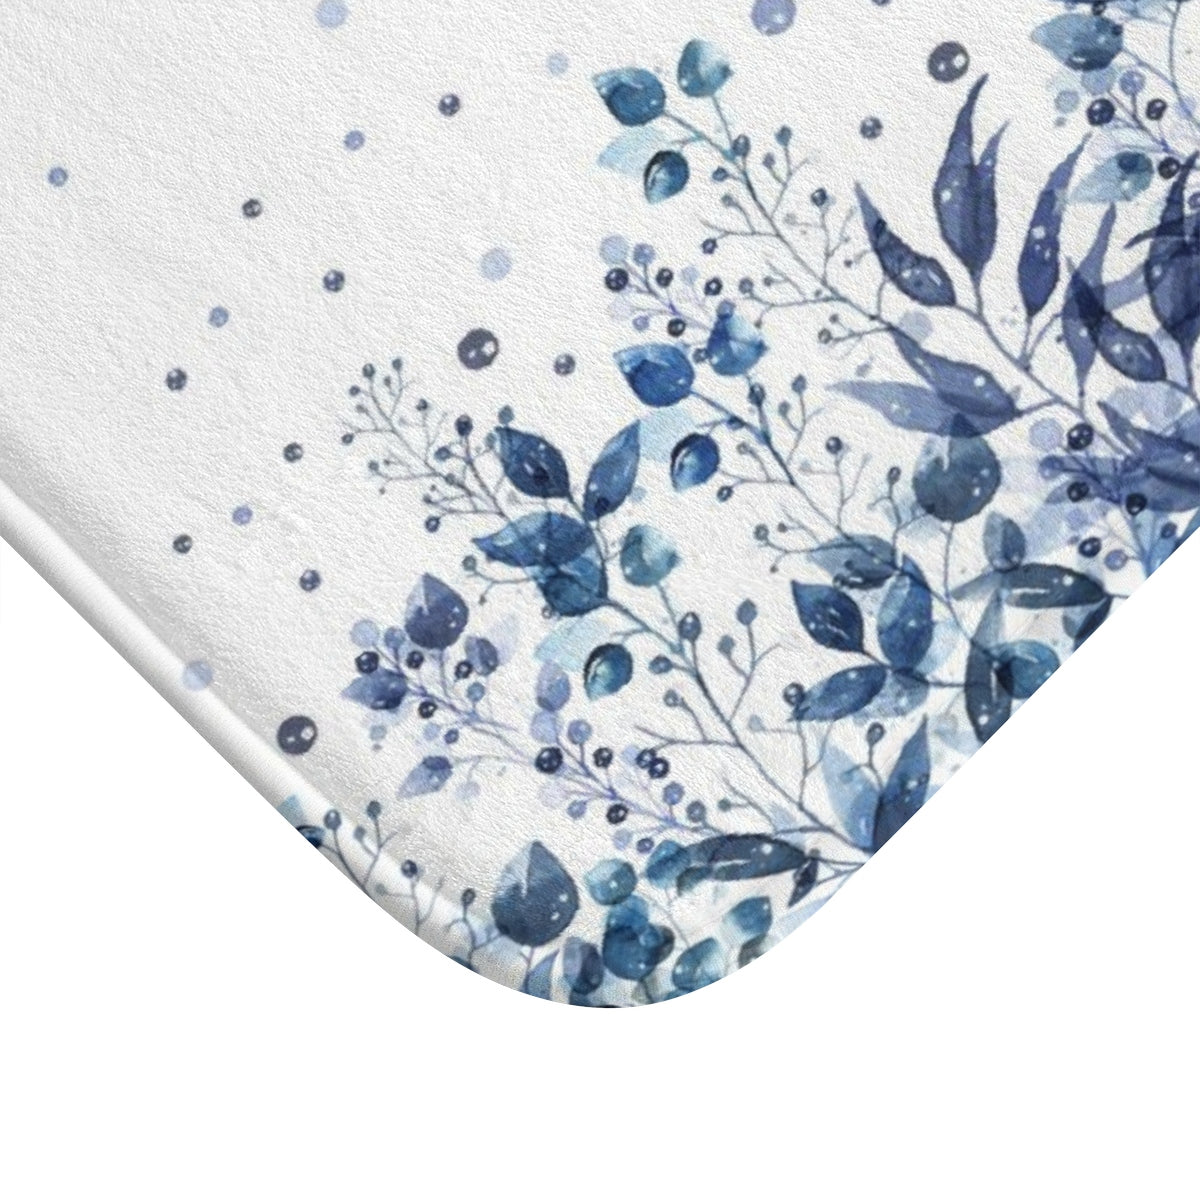 Blue leaf bath rug - Liz Kapiloto Art & Design